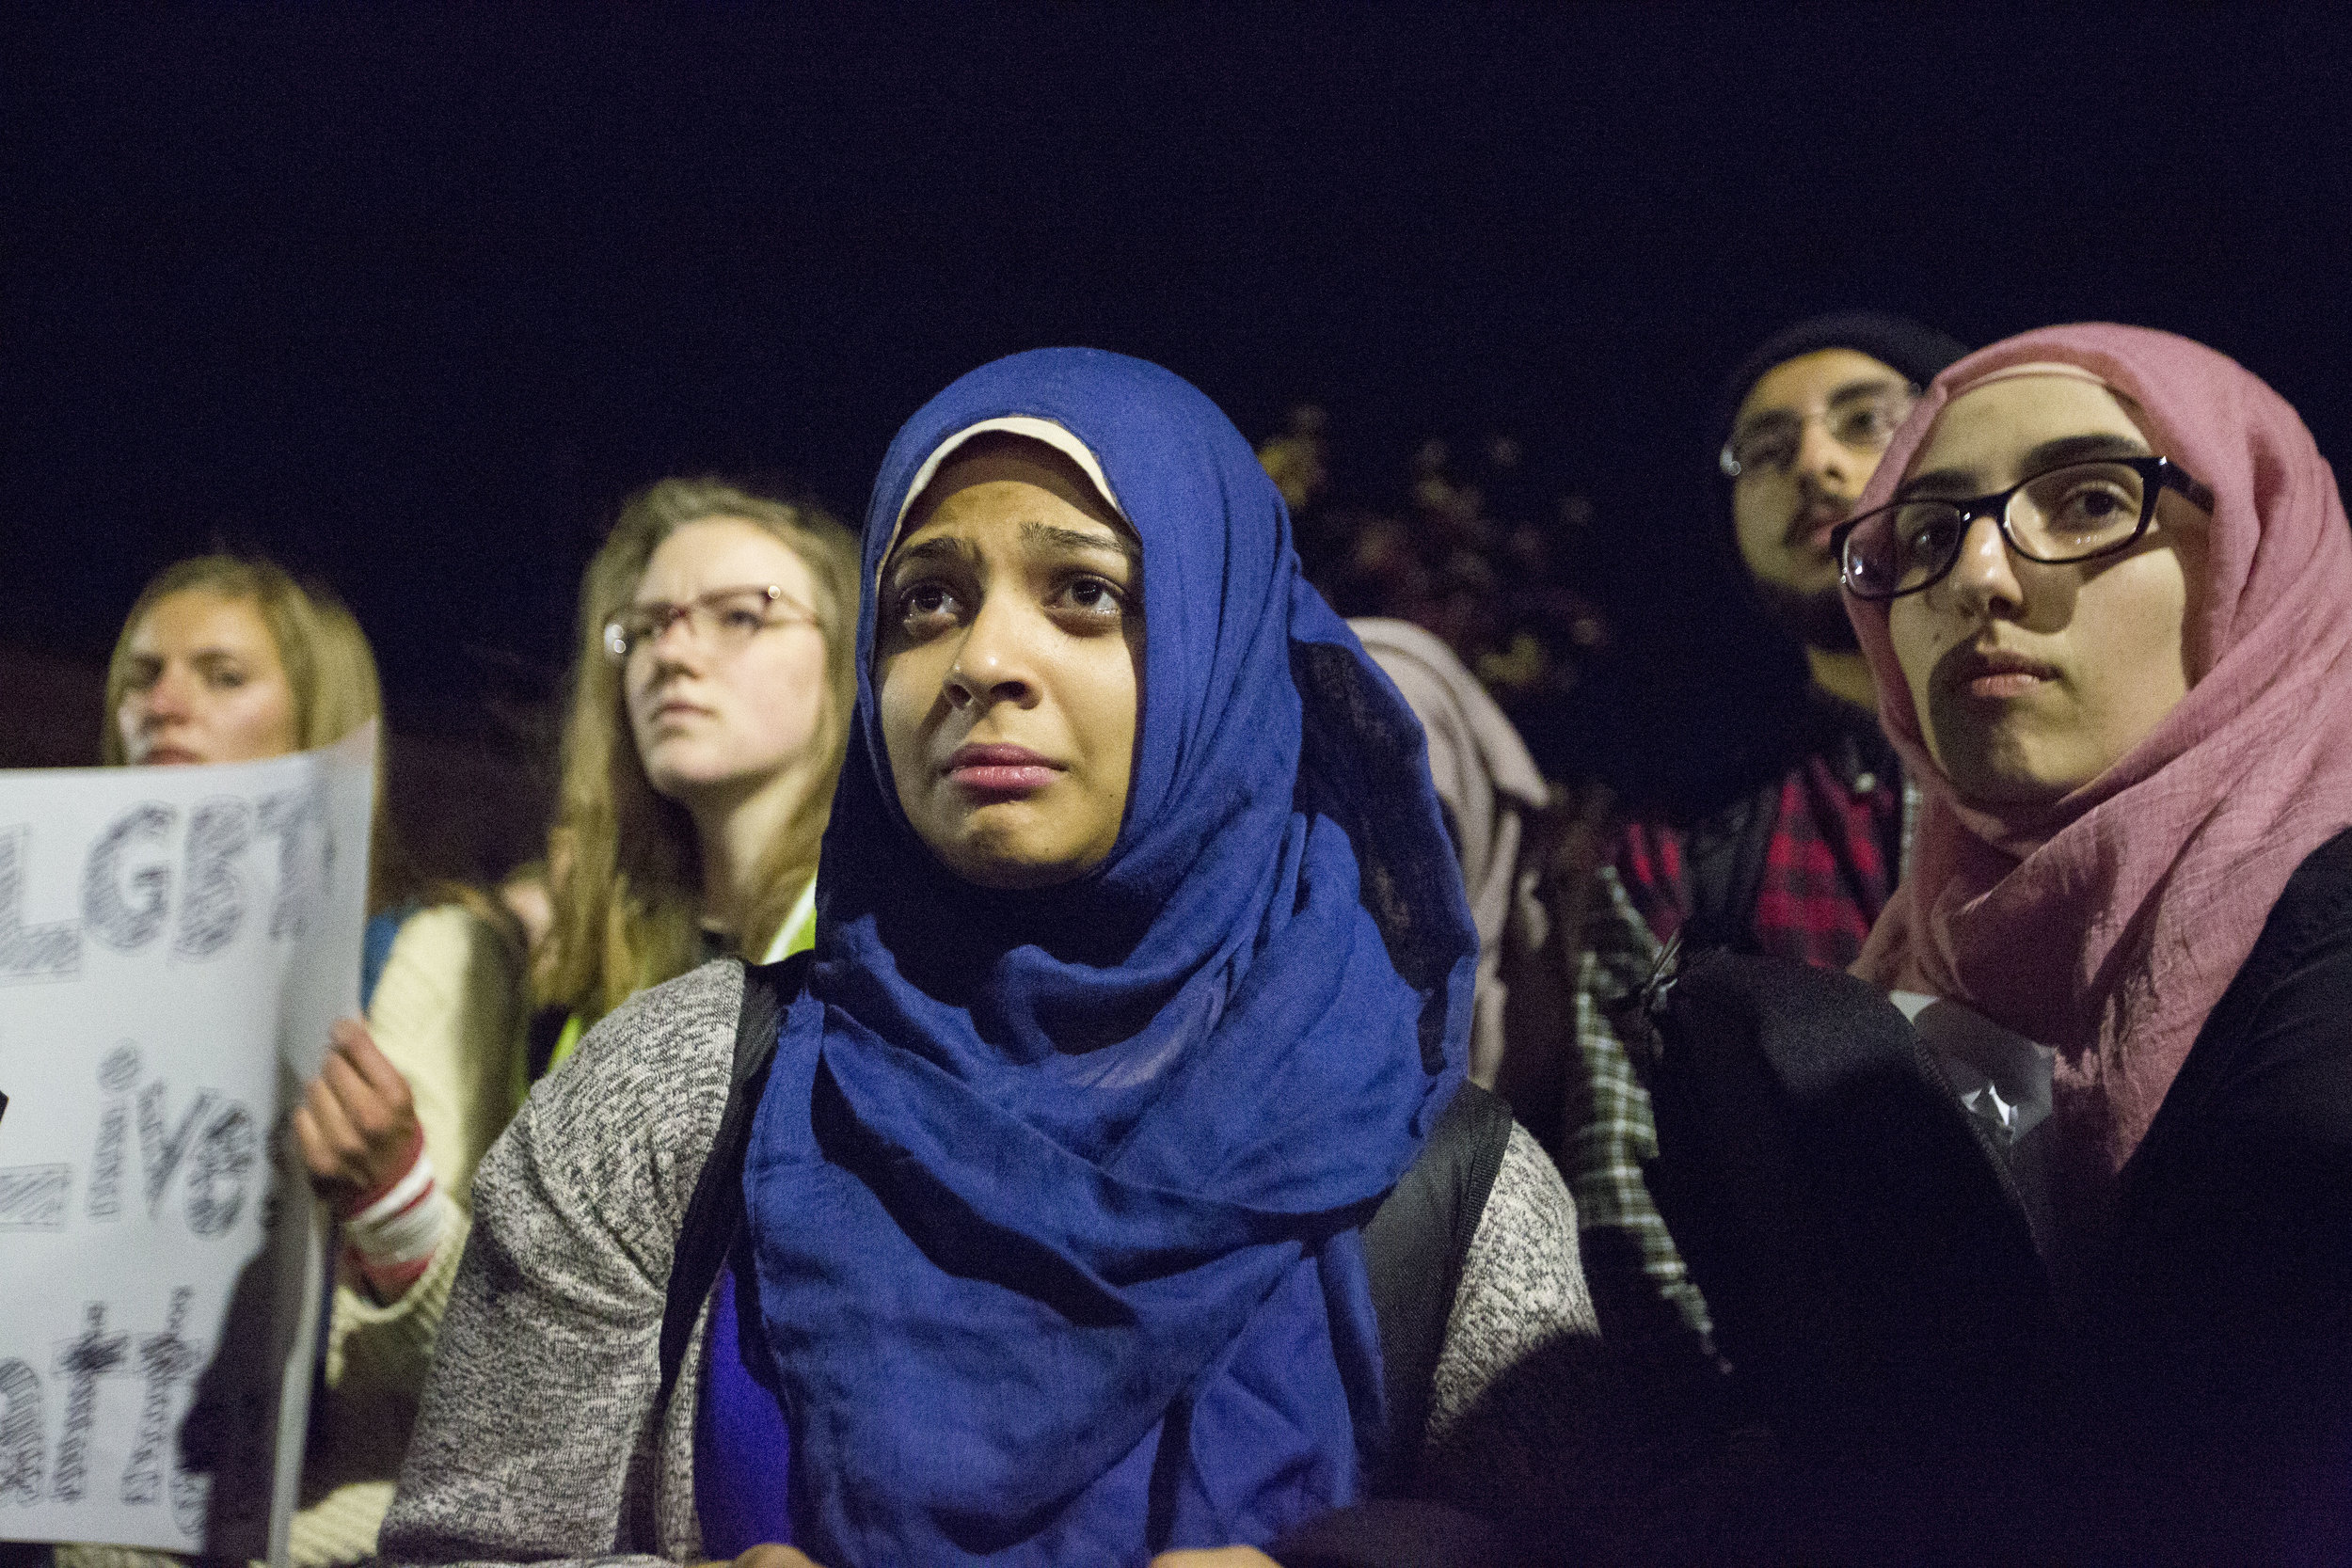 UW-Students get emotional during an anti-Trump rally on Nov 10, 2016 in Madison, WI.